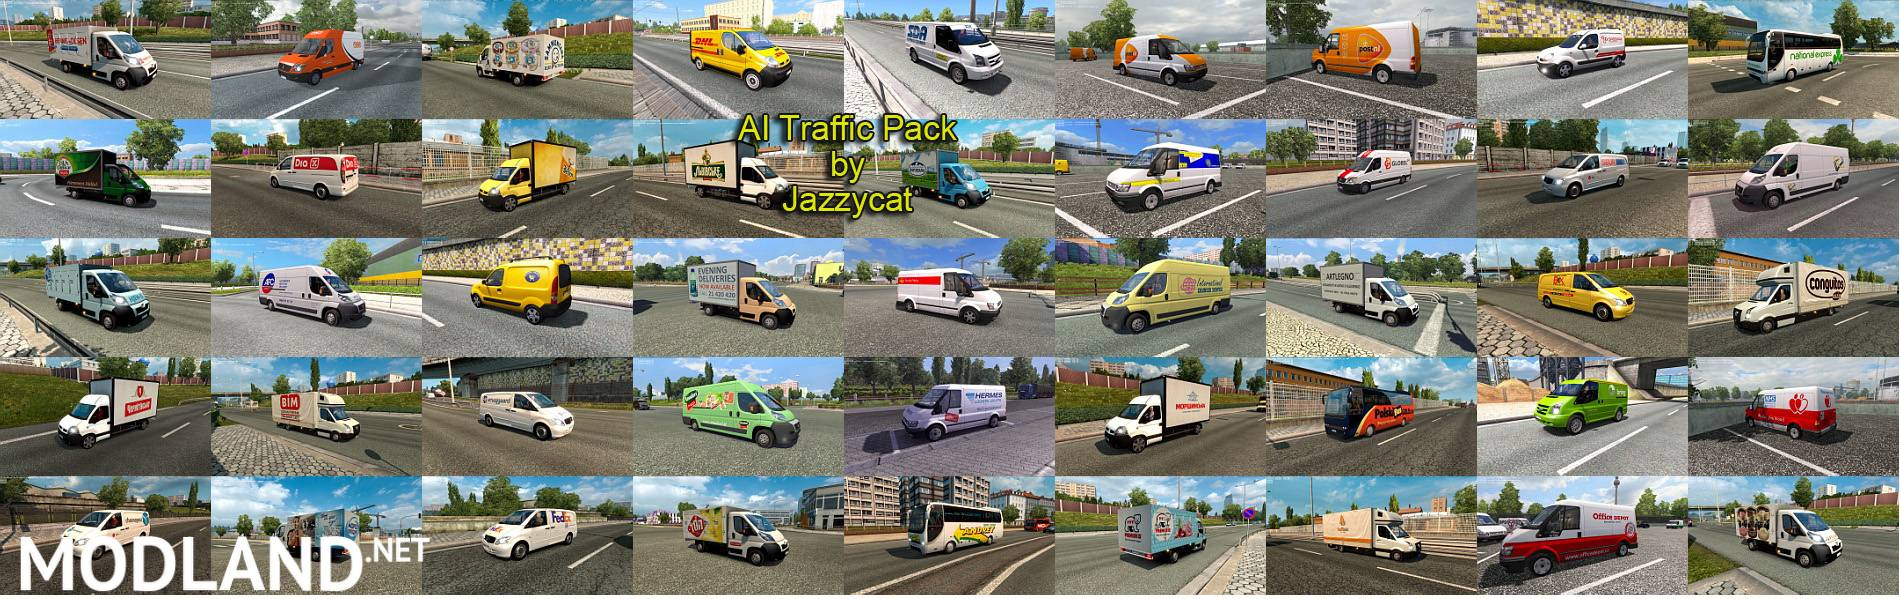 AI Traffic Pack by Jazzycat v5 9 mod for ETS 2